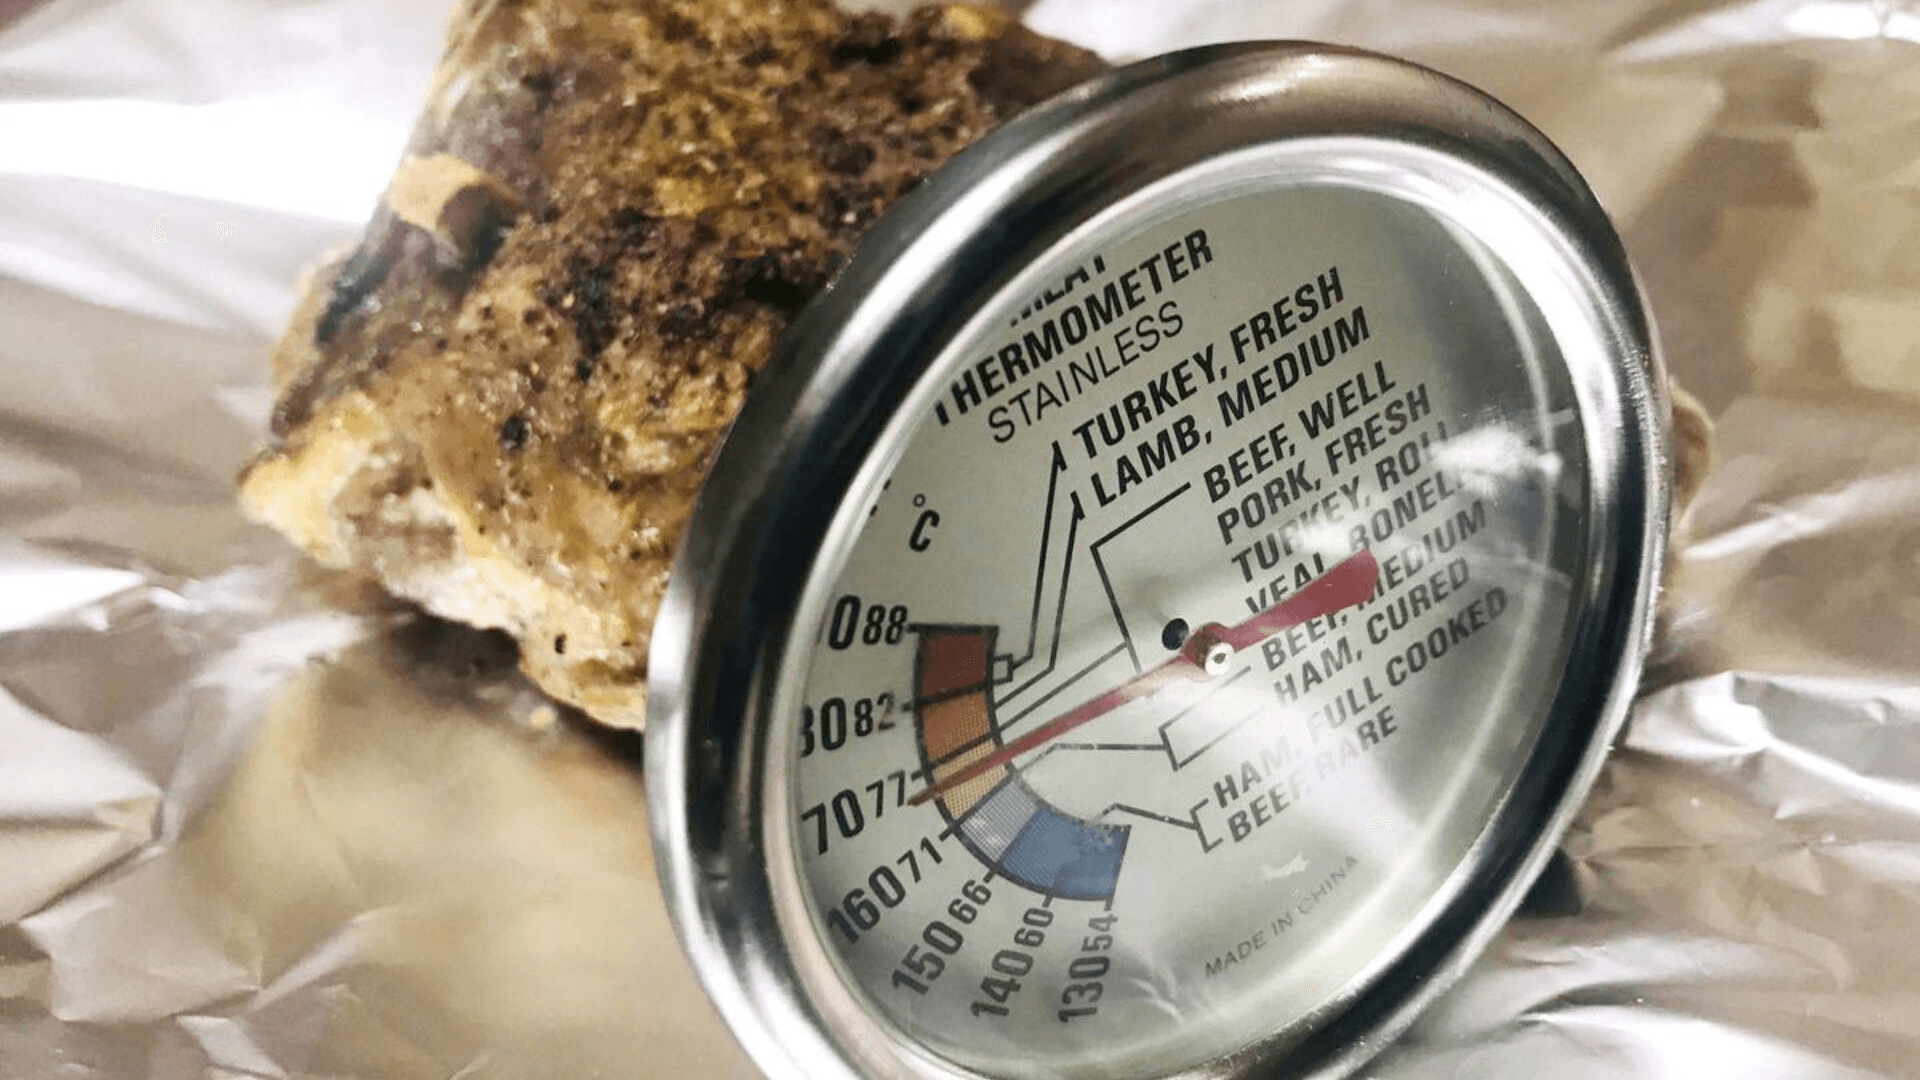 Blacksail Kitchen Analog Meat Thermometer being used for cooking meat